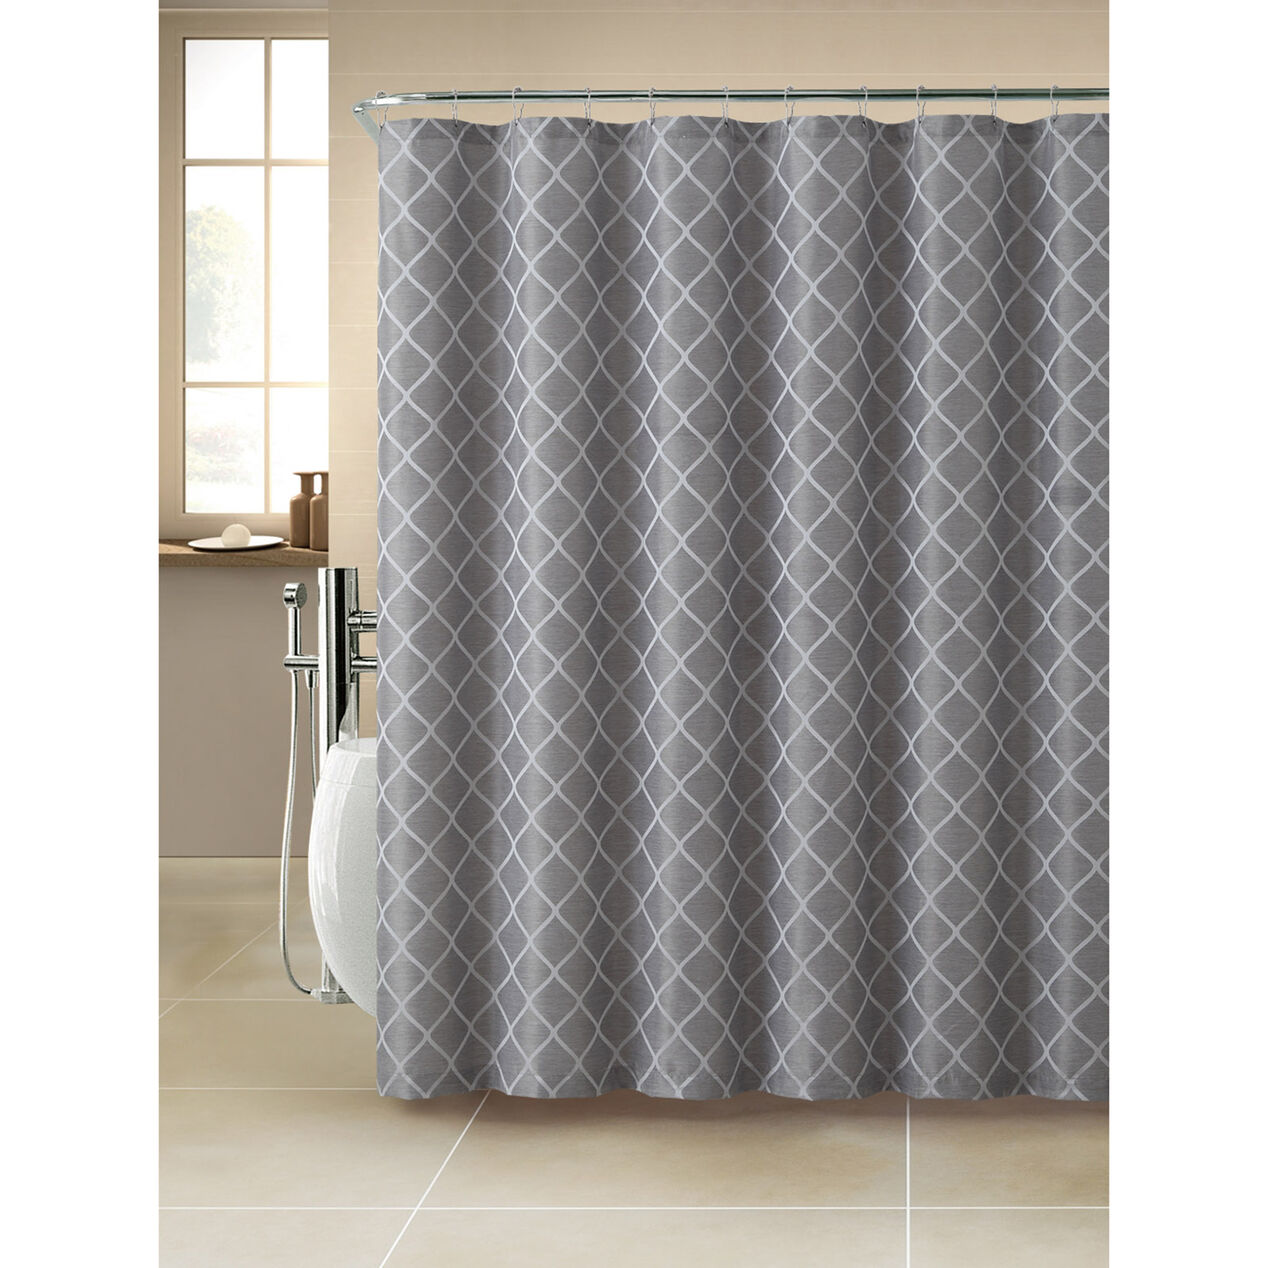 Darien Jacquard Shower CurtainGrey At Home - Beige and gray shower curtain